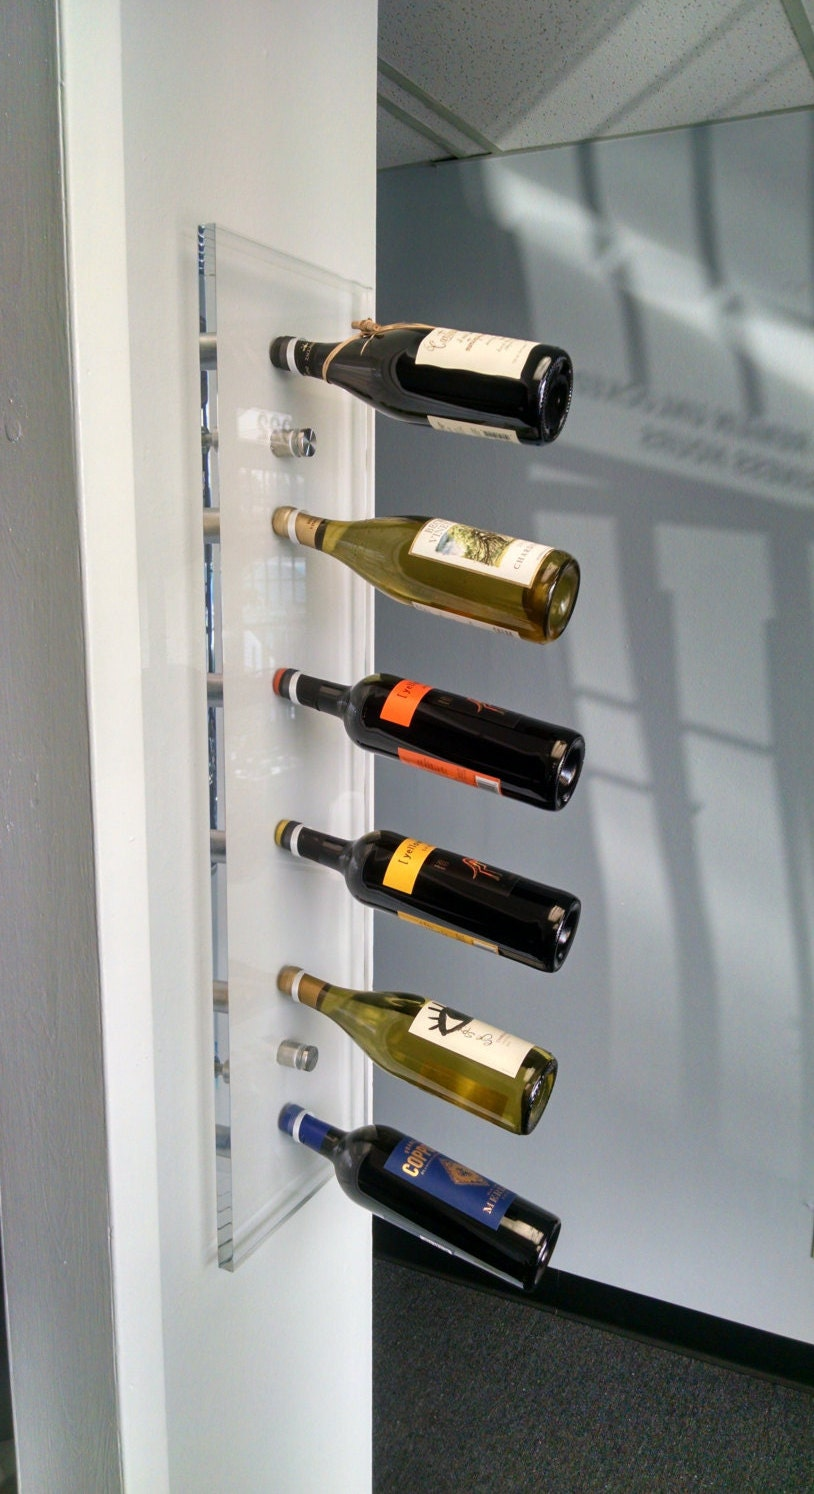 acrylic wine rack acrylic furniture wall mounted wine rack - 🔎zoom